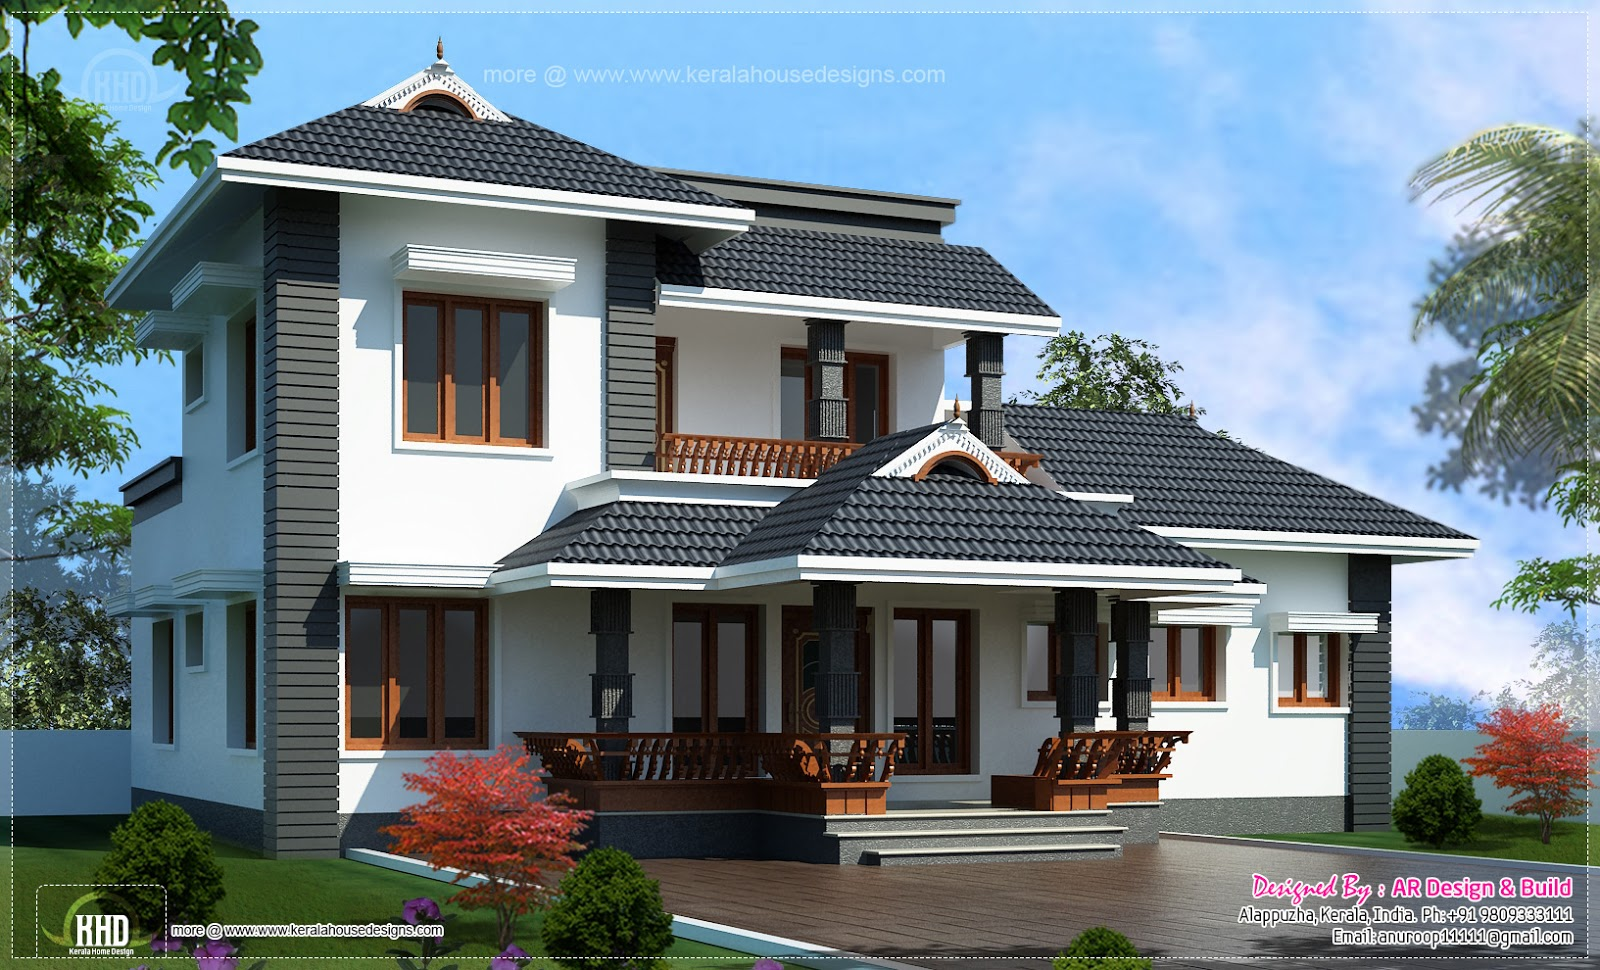 2000 4 bedroom sloping roof residence kerala for Home architecture design kerala